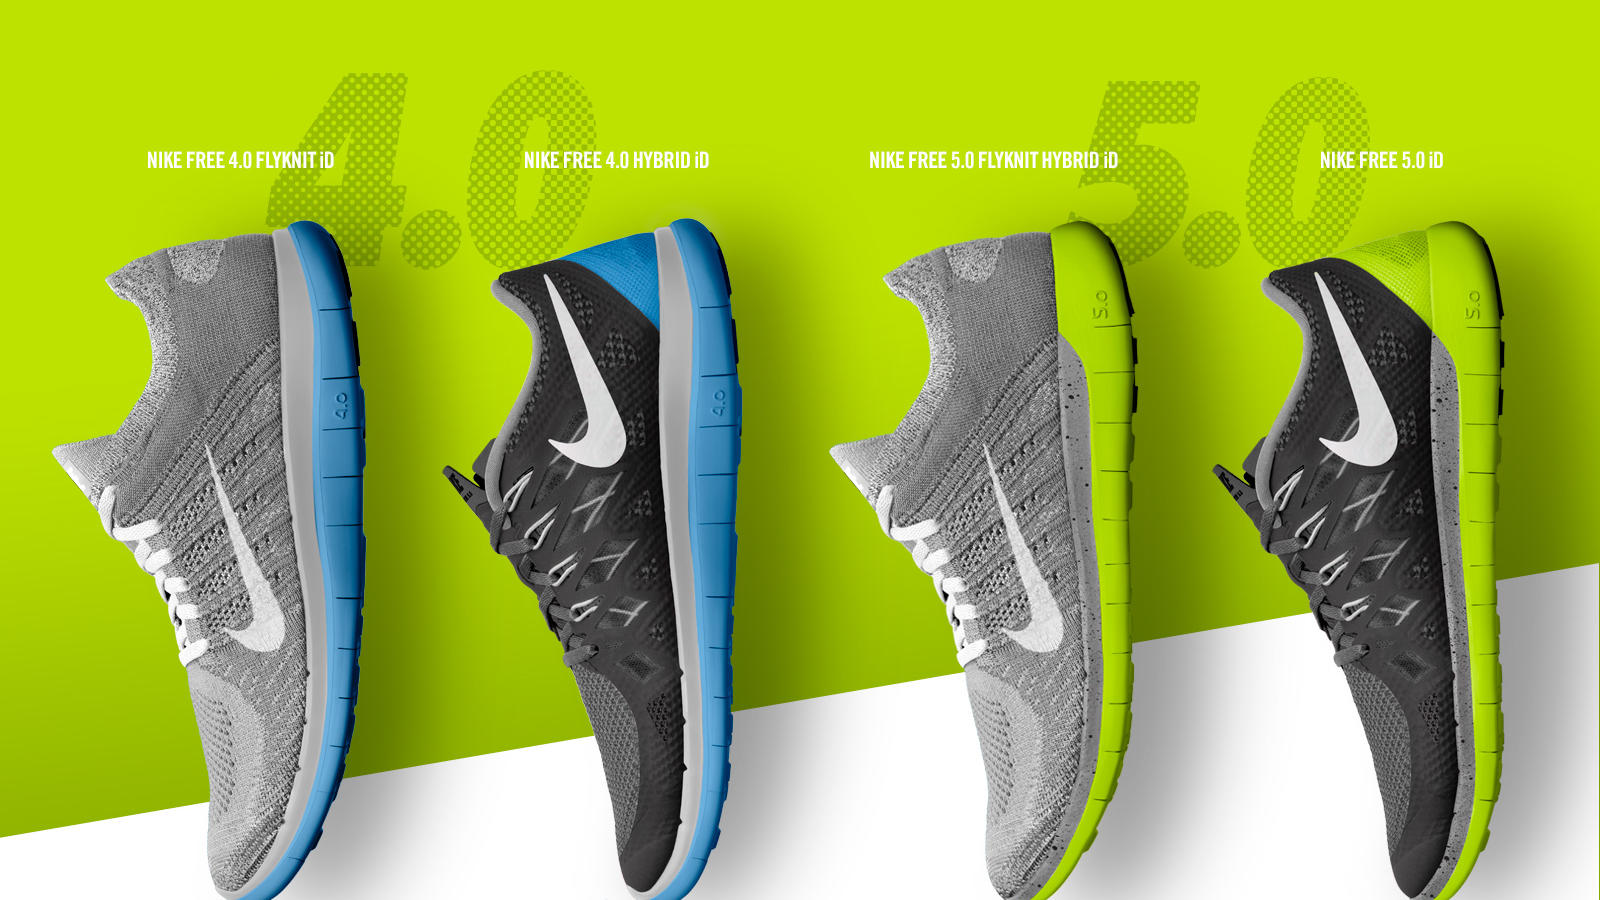 Nike Free 2014 NIKEiD Collection